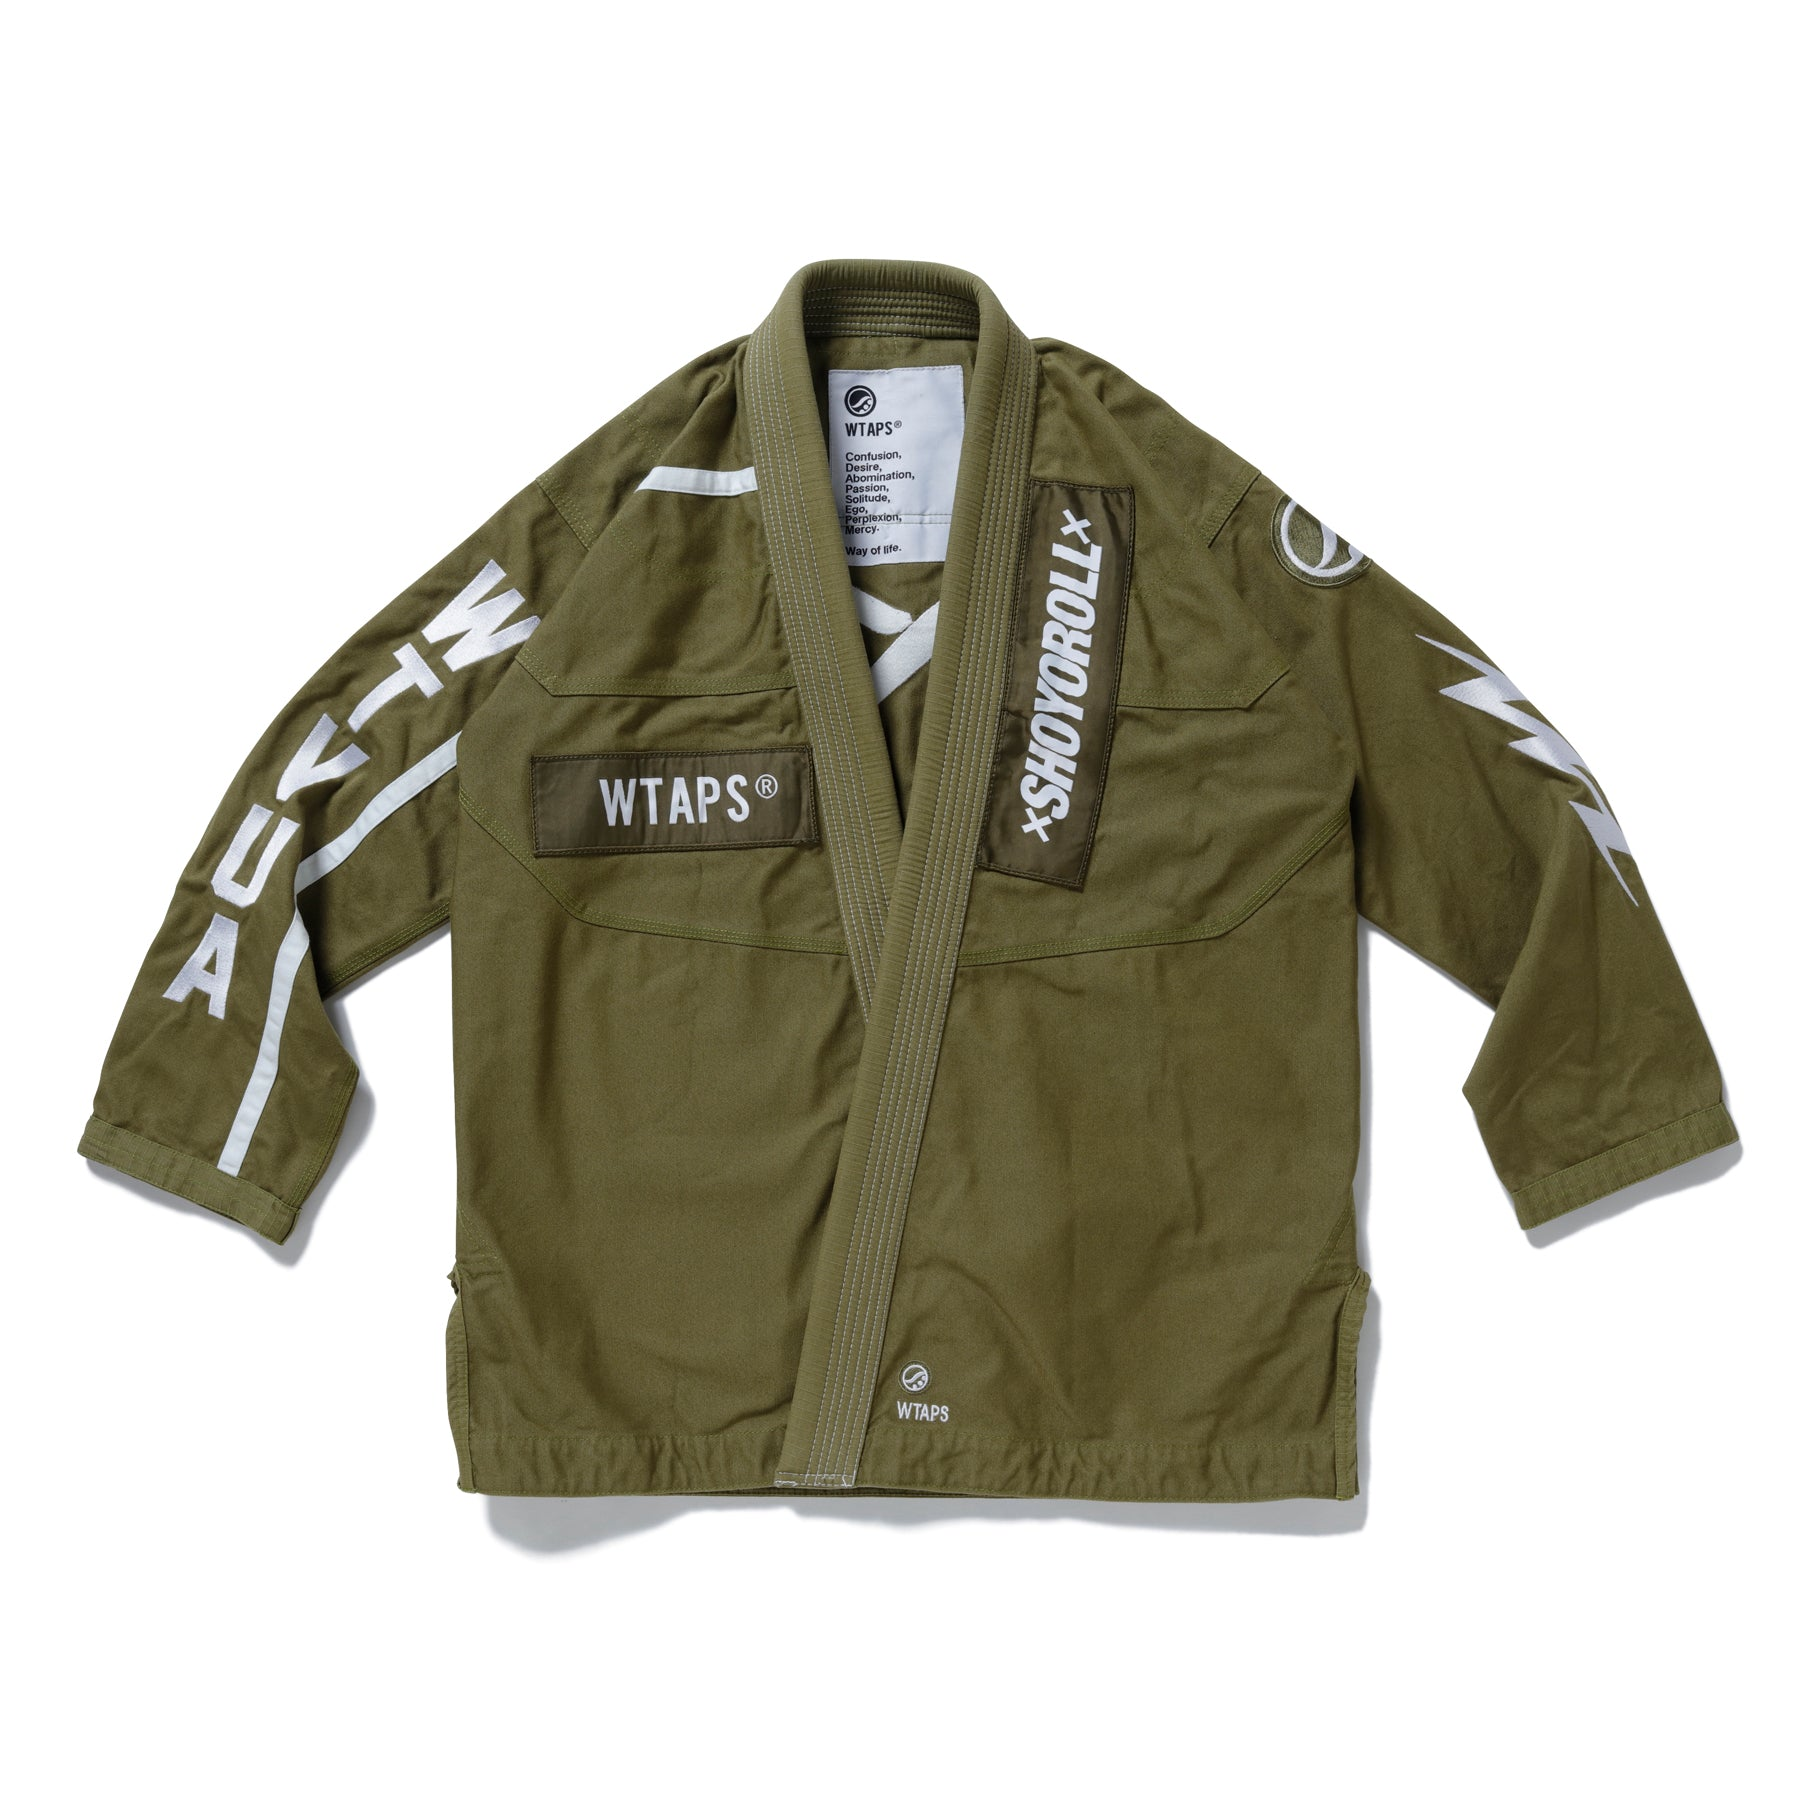 Batch #113 WTAPS Kimono (Olive-Drab) *Ships to US Only